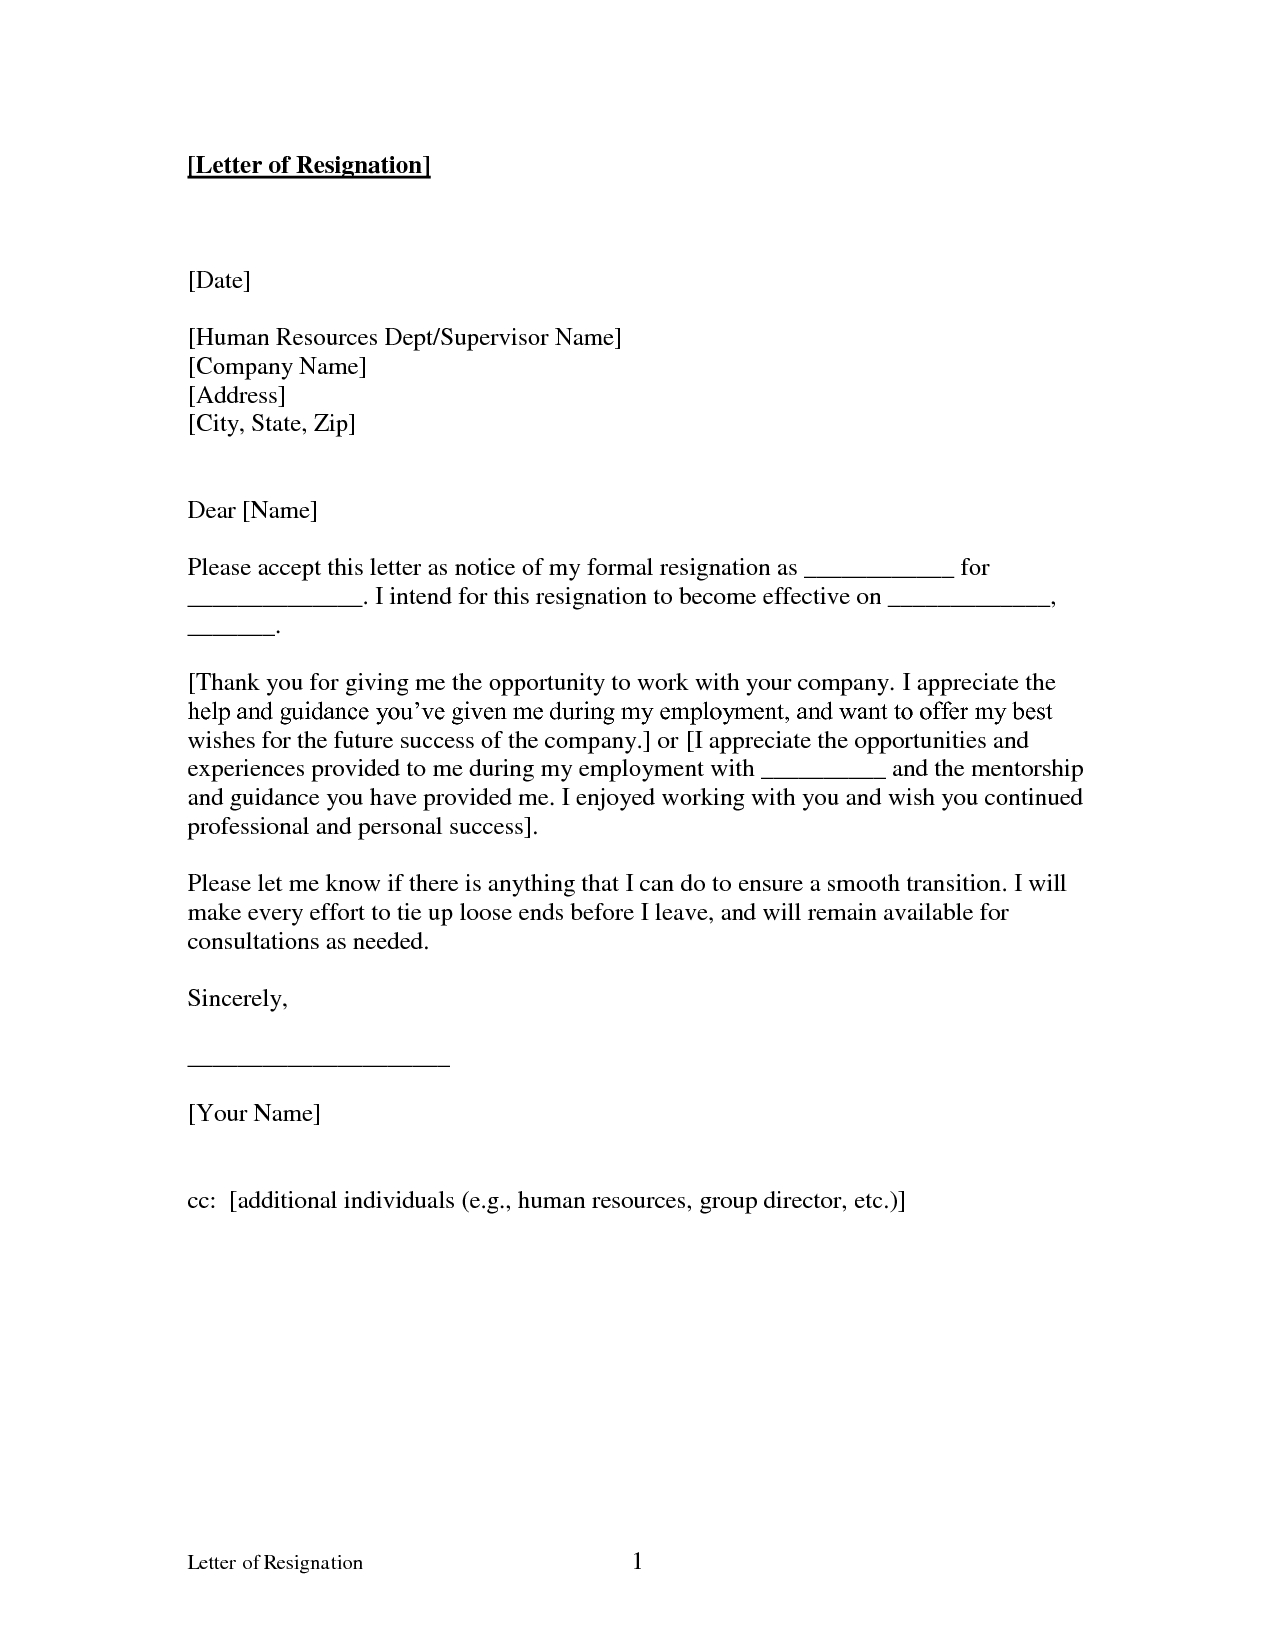 Guardianship Letter In Case Of Death.Guardianship Letter In Case Of Death Template Examples